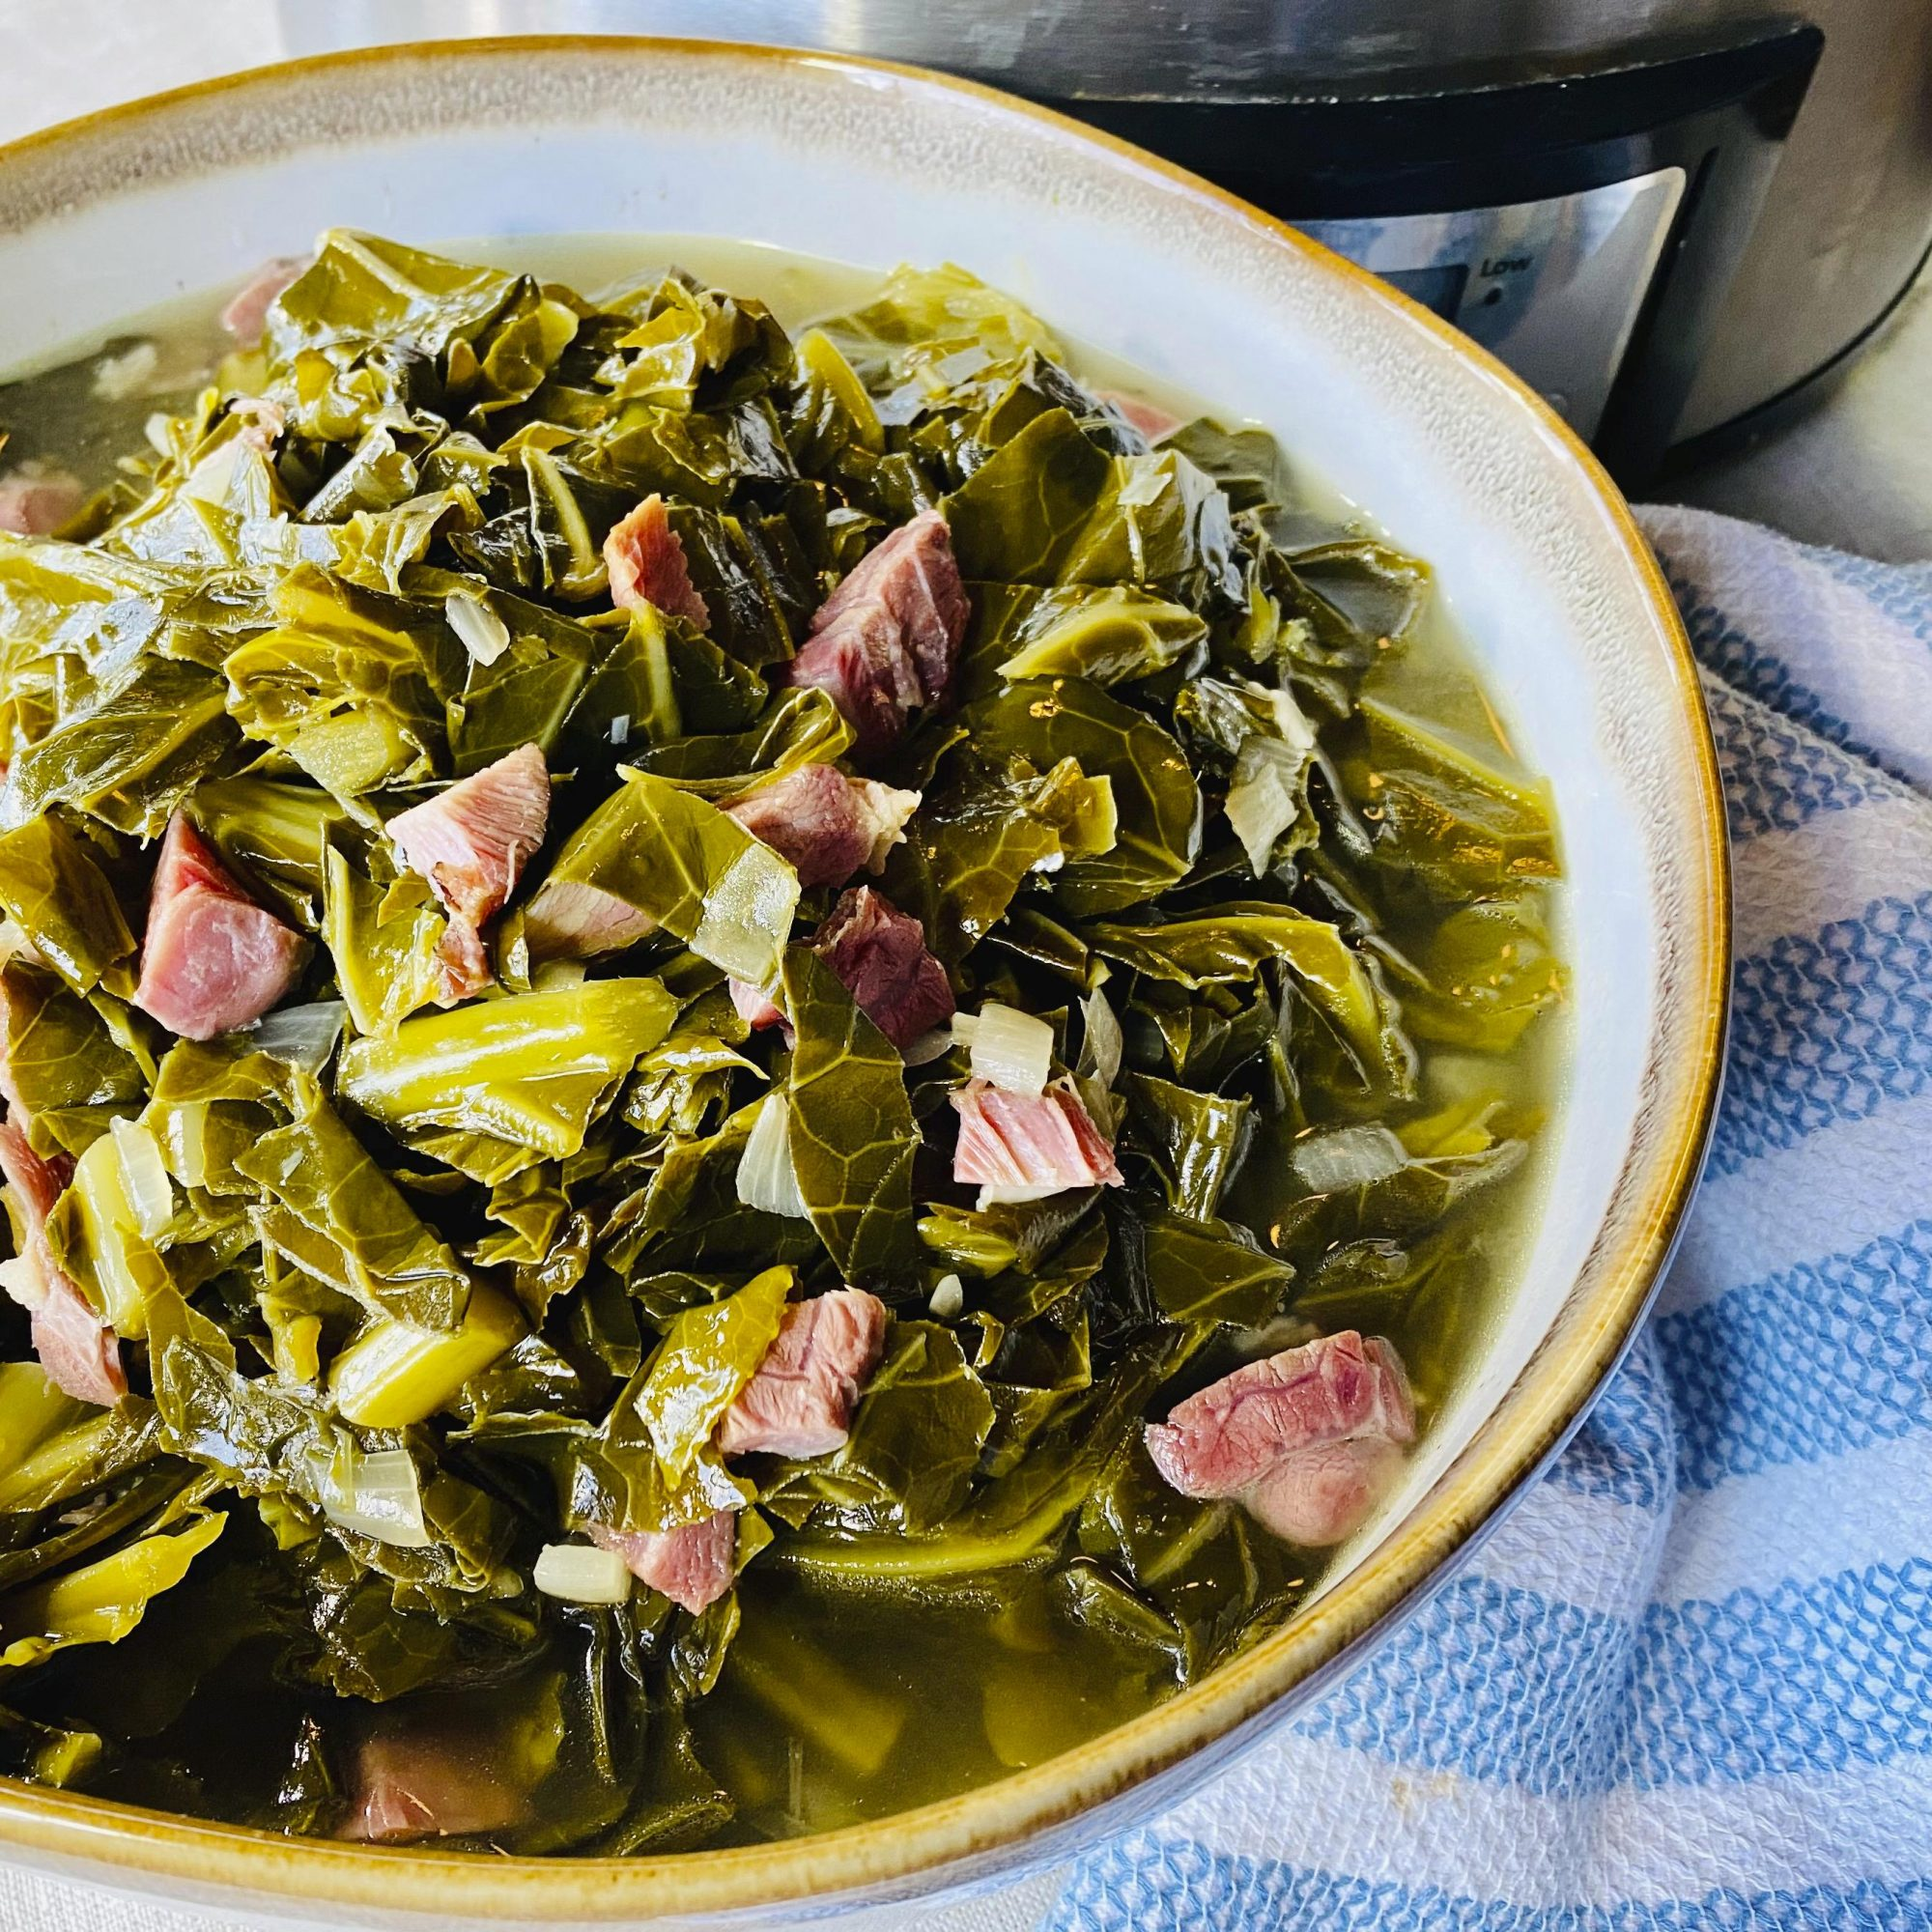 A bowl full of Slow Cooker Collard Greens sitting on top of a blue and white striped linen in front of the Slow Cooker.